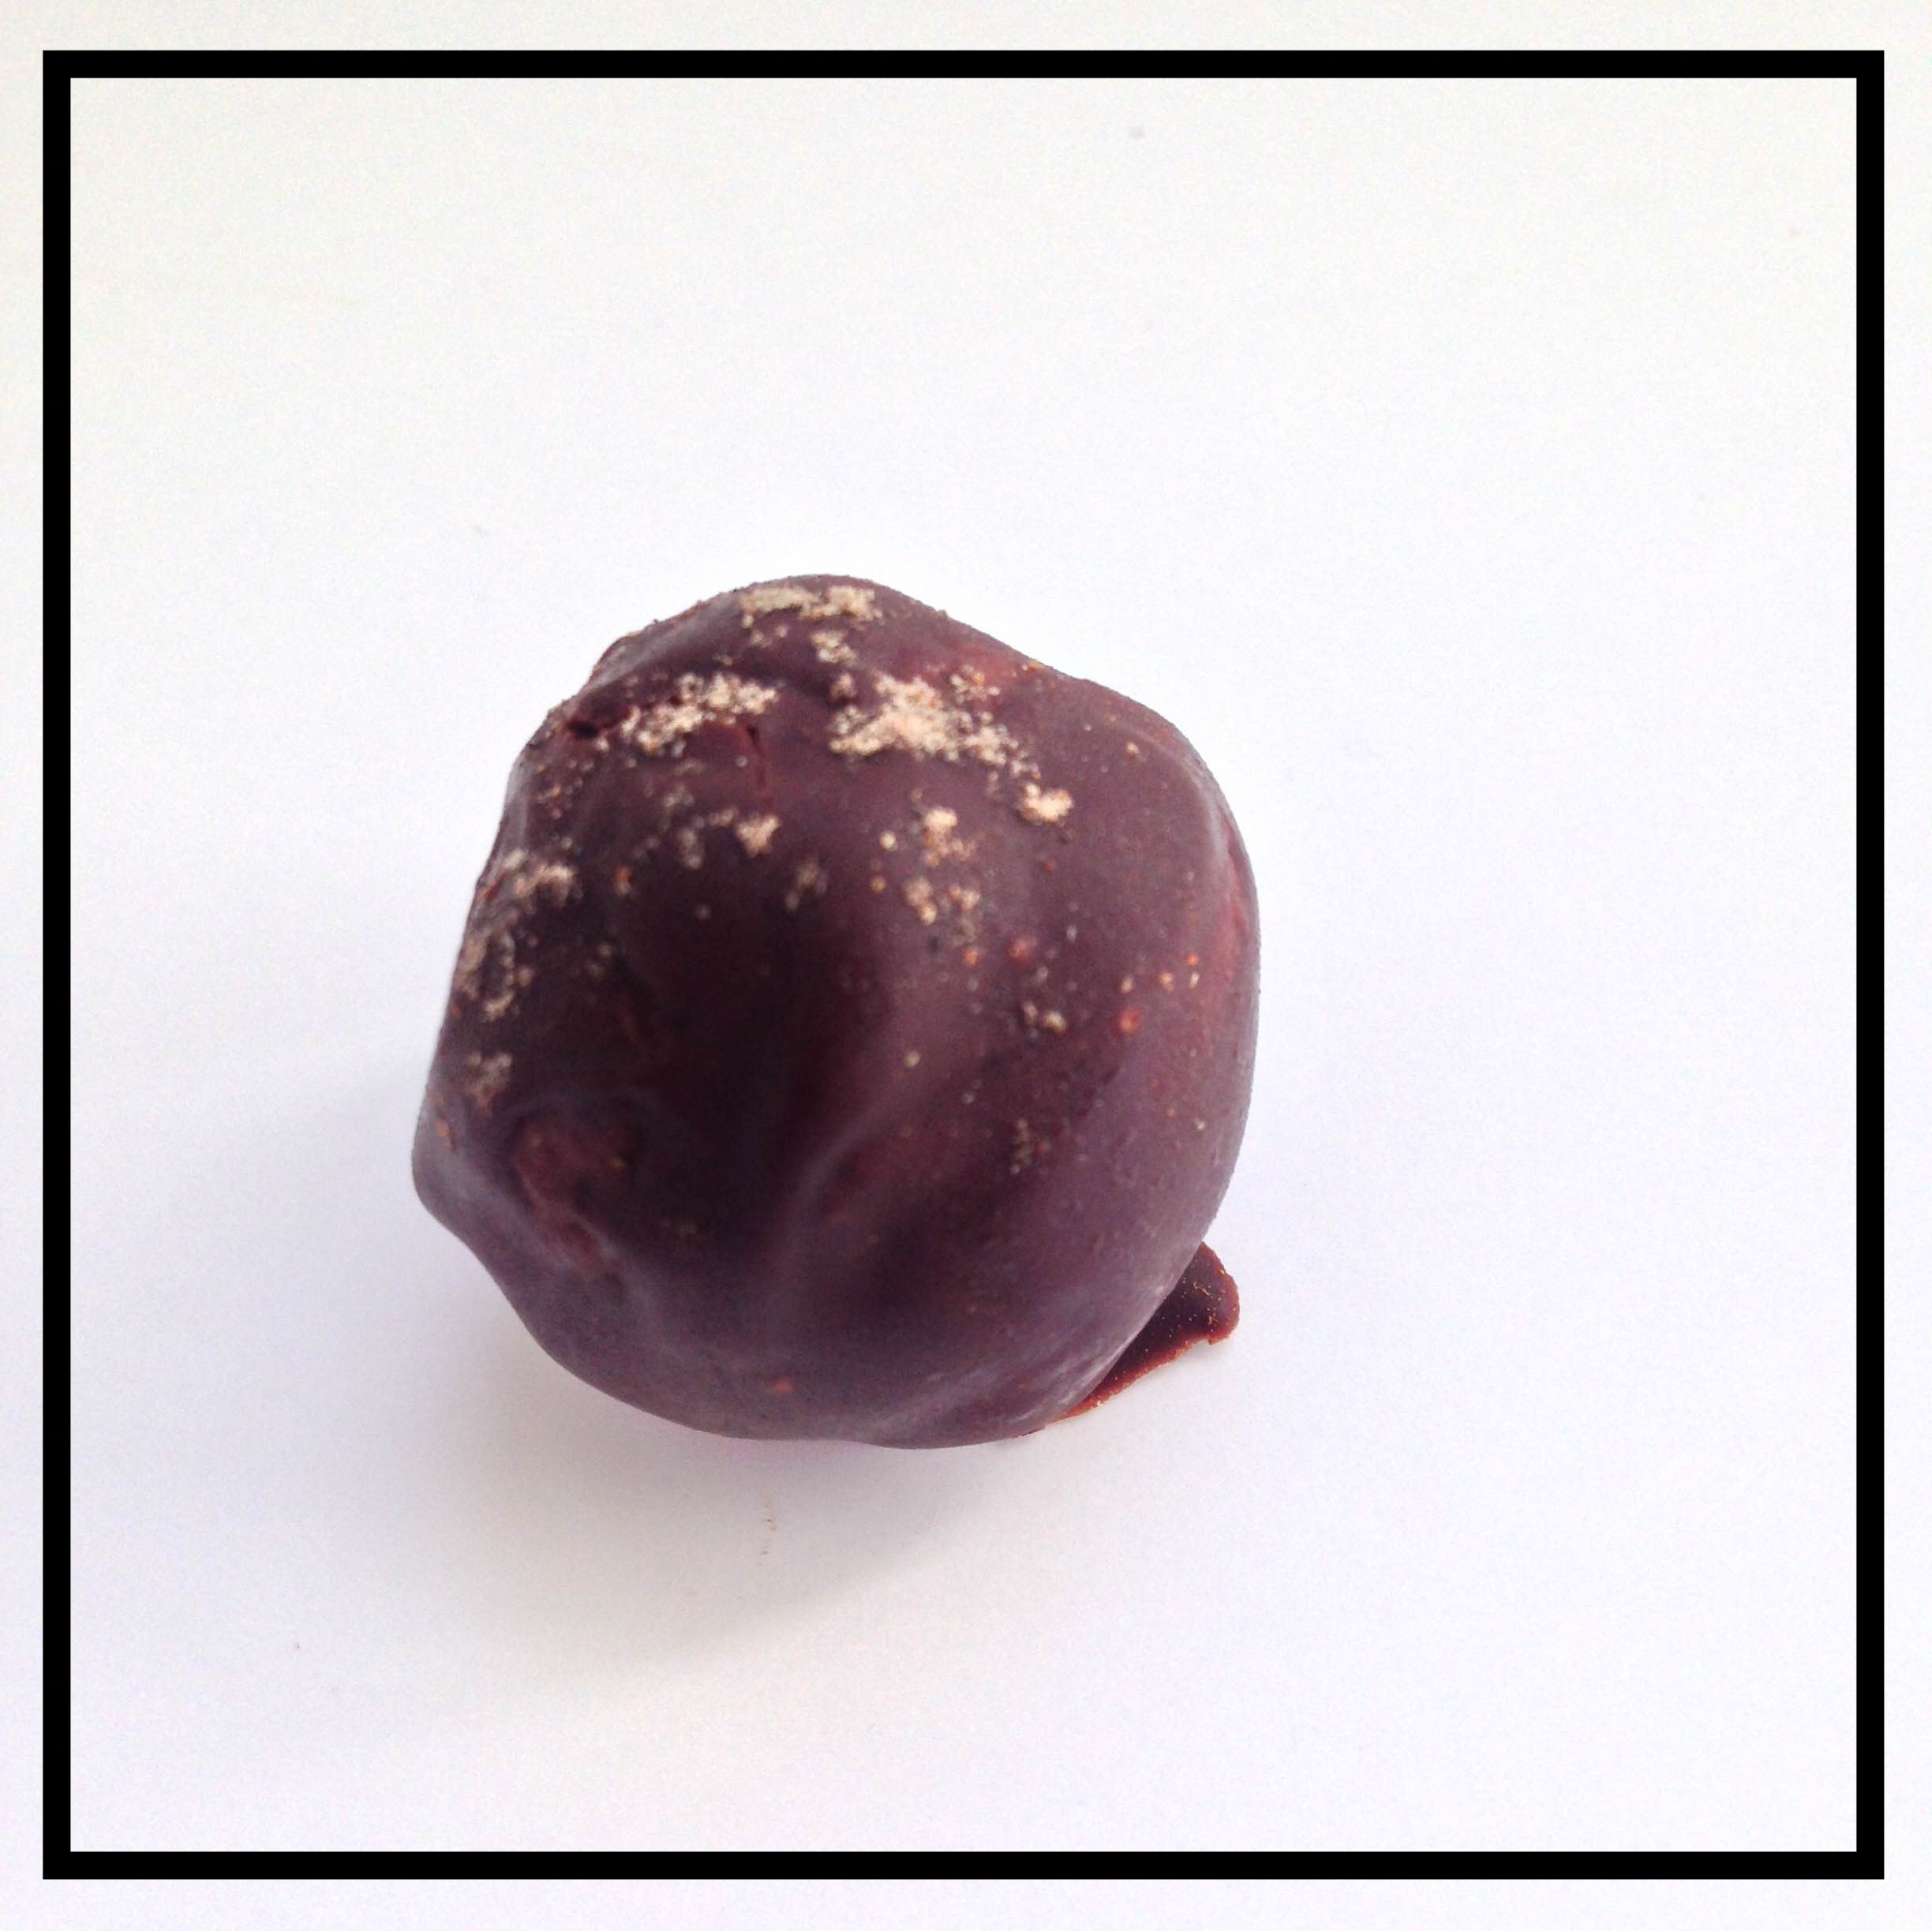 CARDAMOM   Grains of Paradise, these aromatic pods and seeds are infused into chocolate ganache